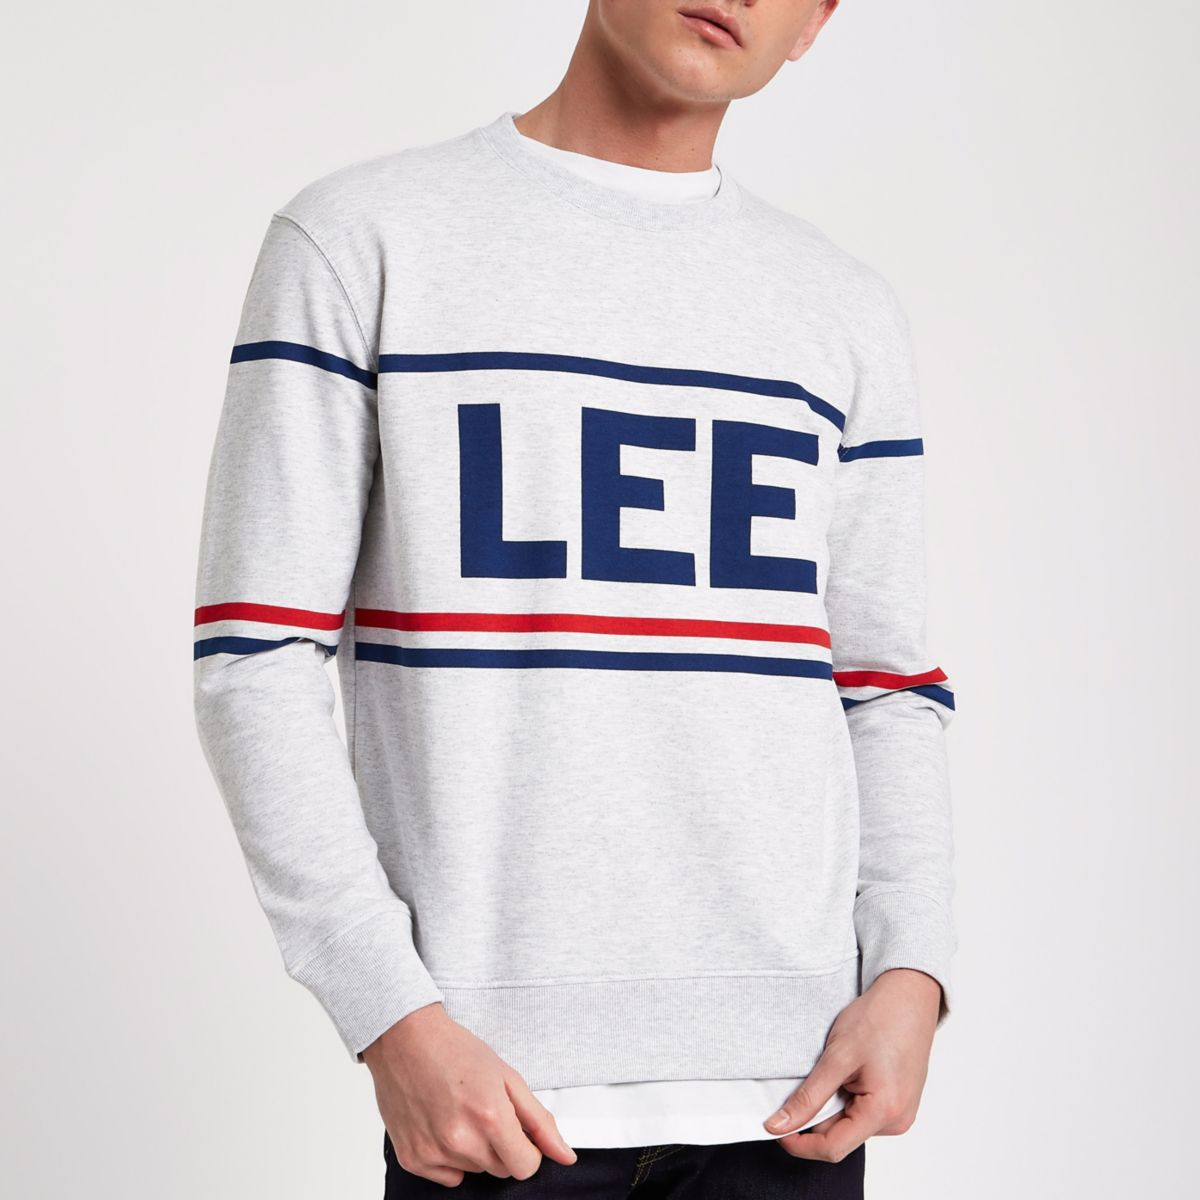 Lee grey marl brand print sweatshirt